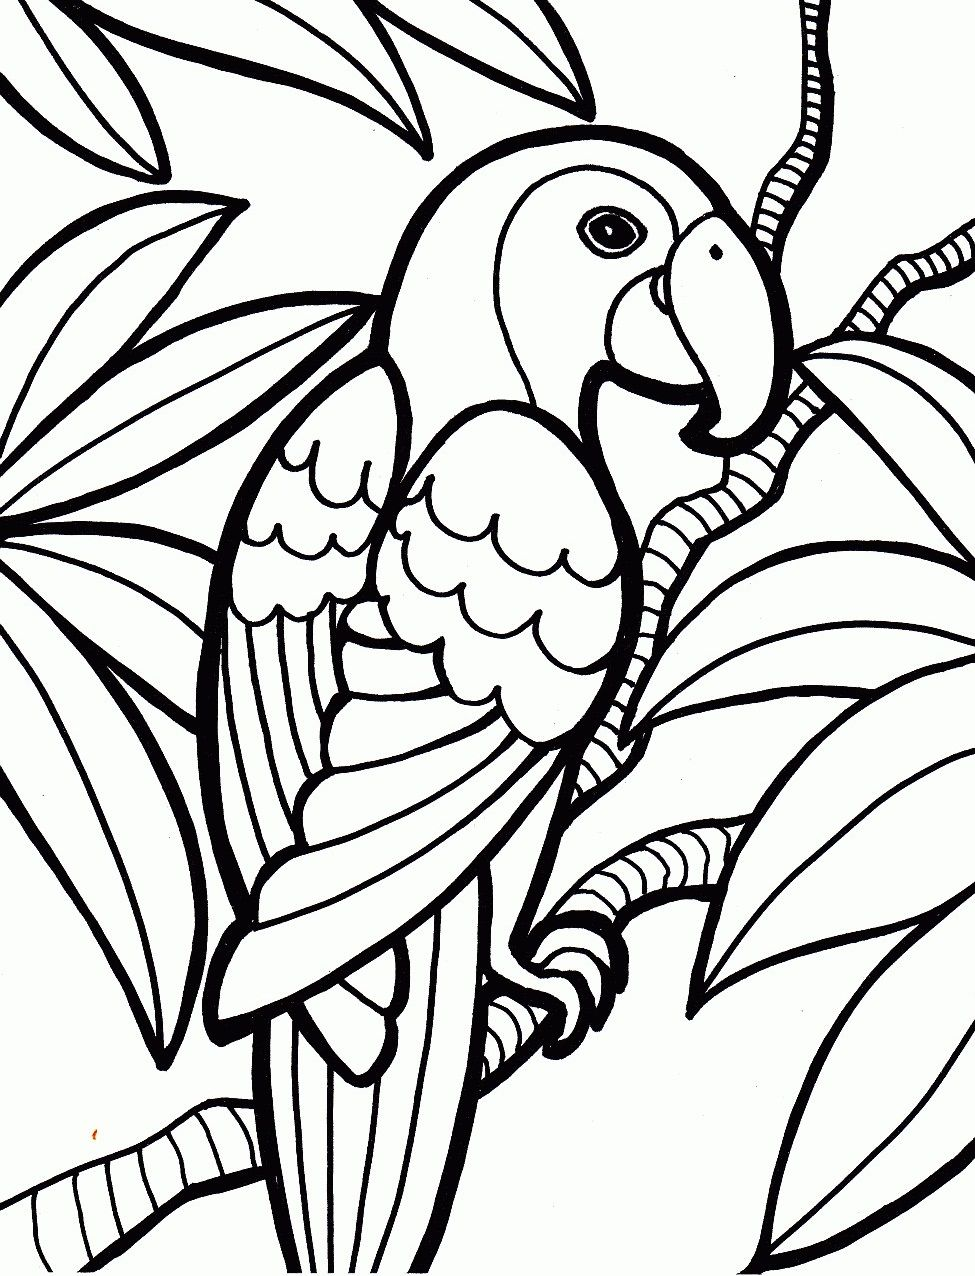 Parrot Birds Coloring Pages For Kids Tw Printable Birds Coloring Pages For Kids Maleboger Dyr Tegninger